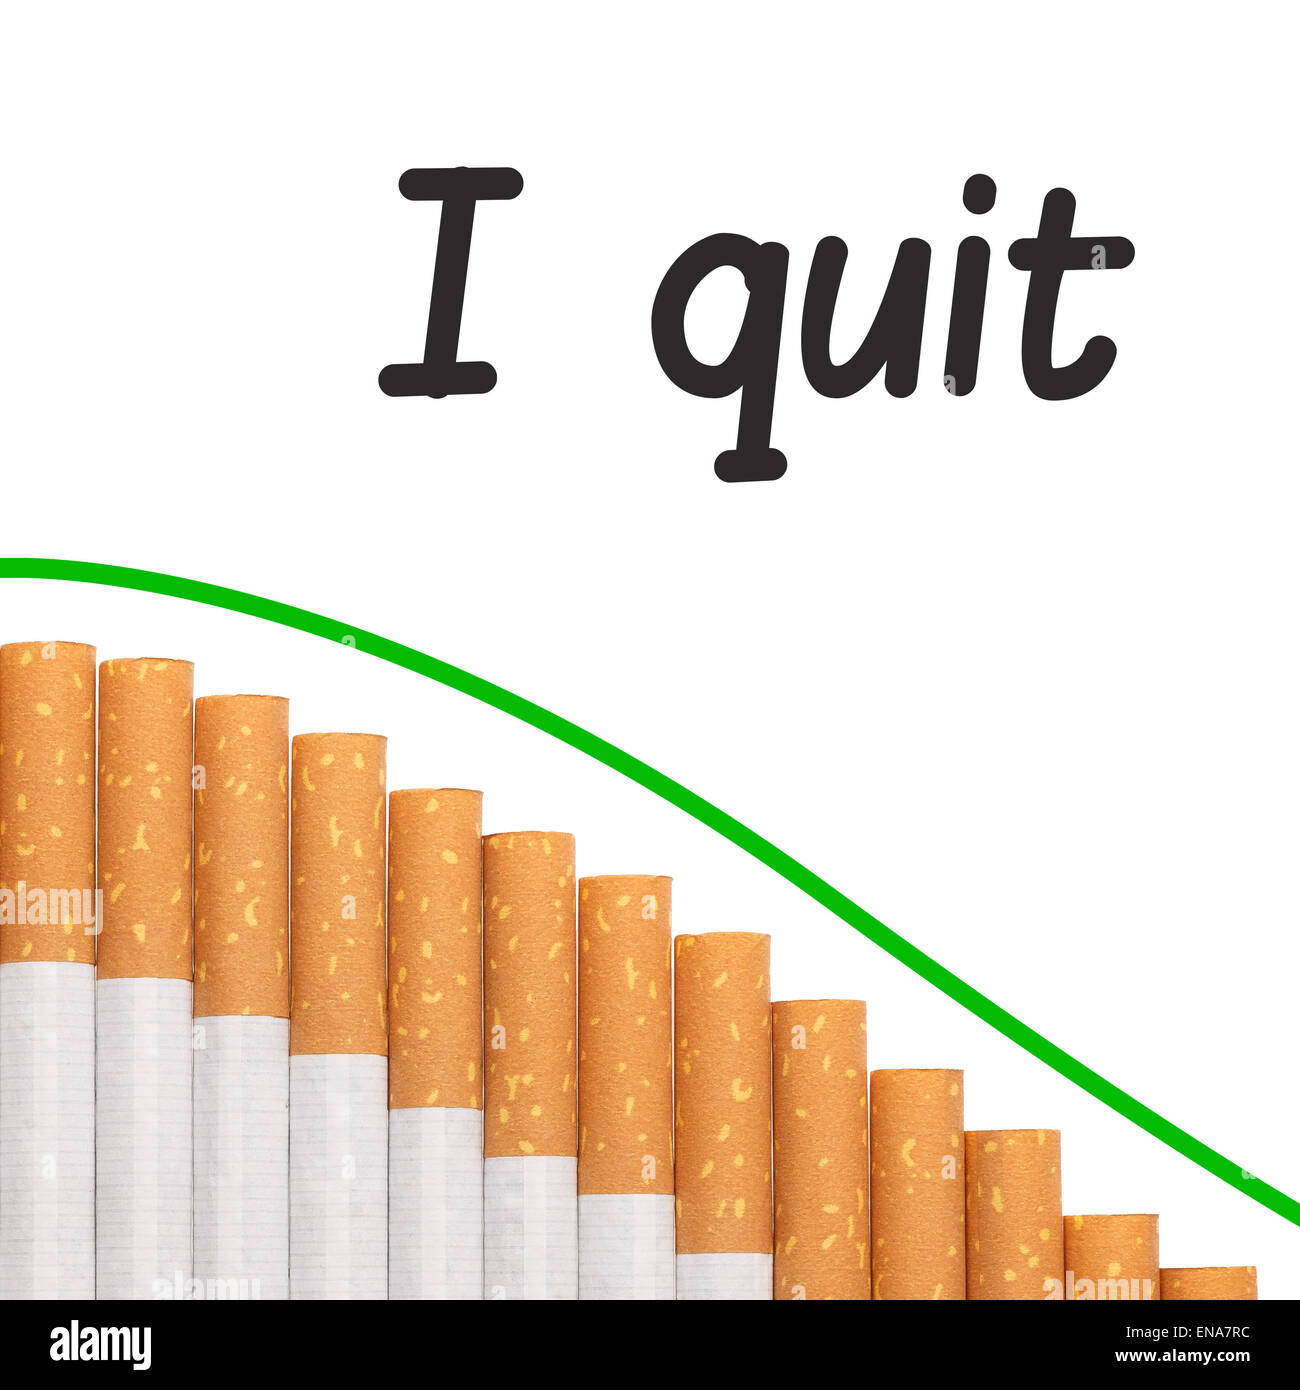 Quit smoking text with a graph of cigarettes and a red down trend line. - Stock Image